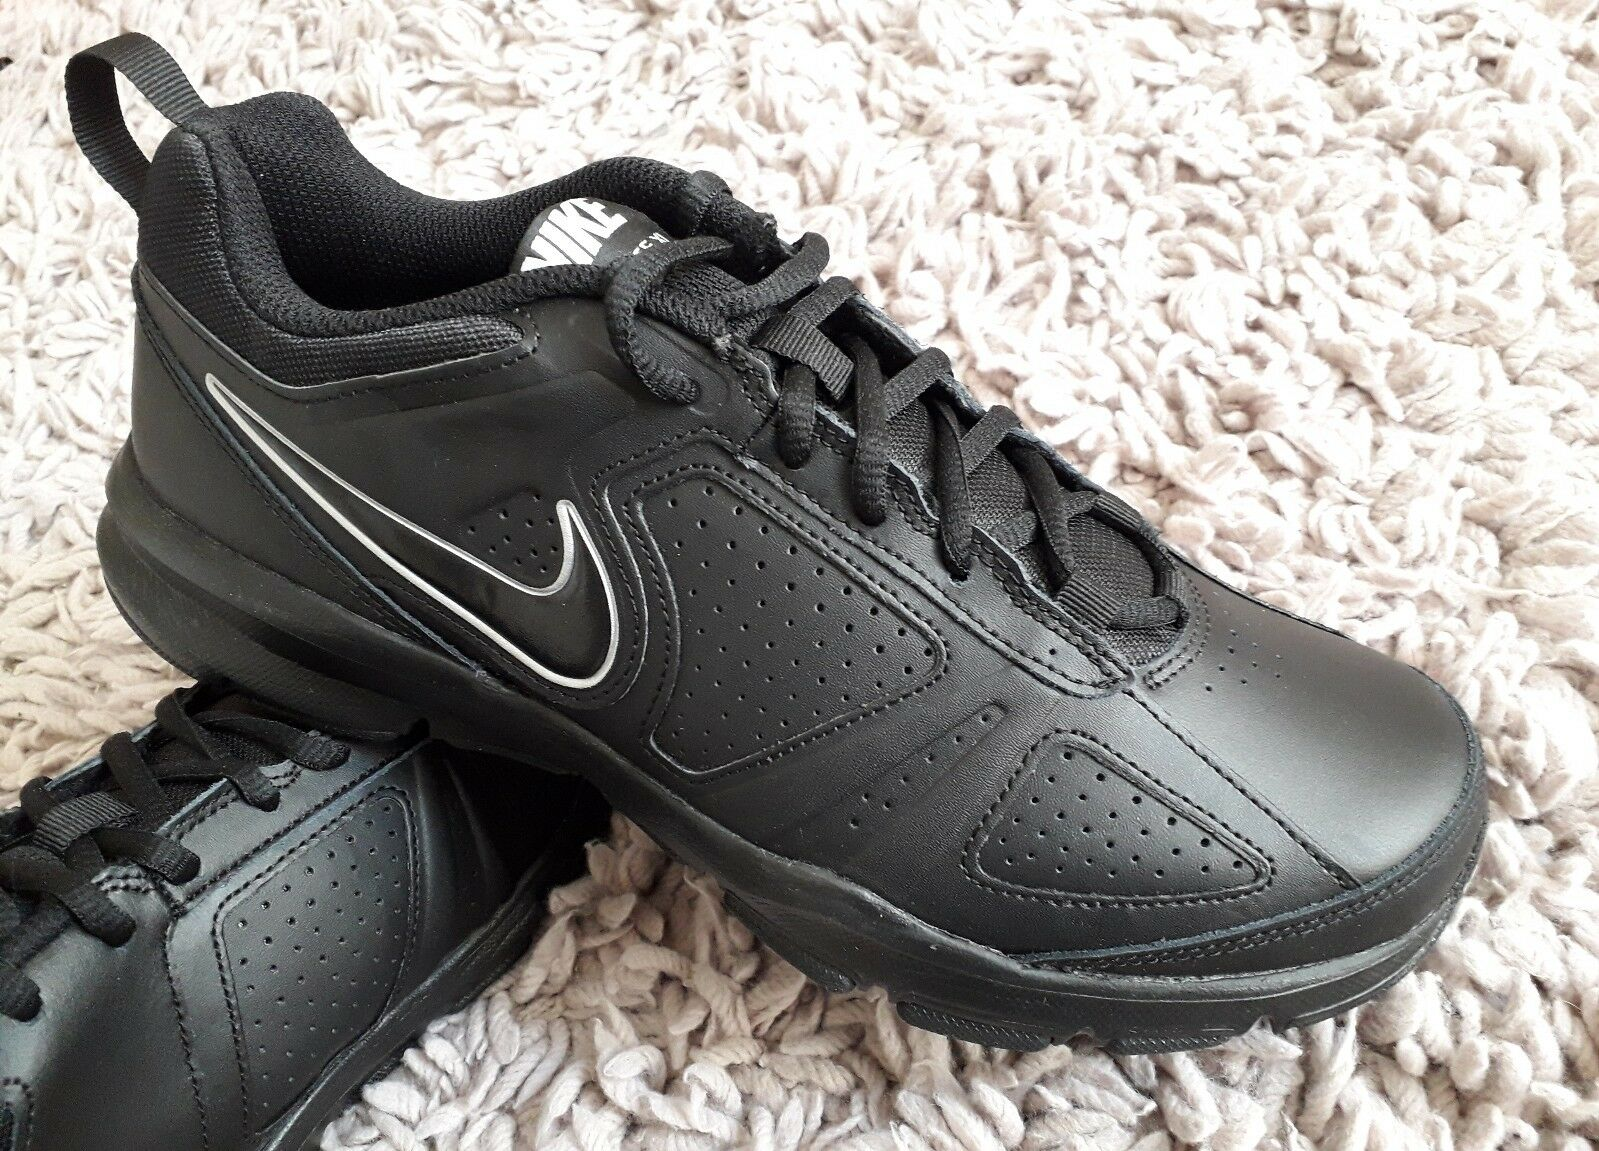 NIKE chaussures T LITE X1 homme TRAINERS SPORTS  chaussures NIKE Taille7 SPORTS FITNESS NEW noir b532ce